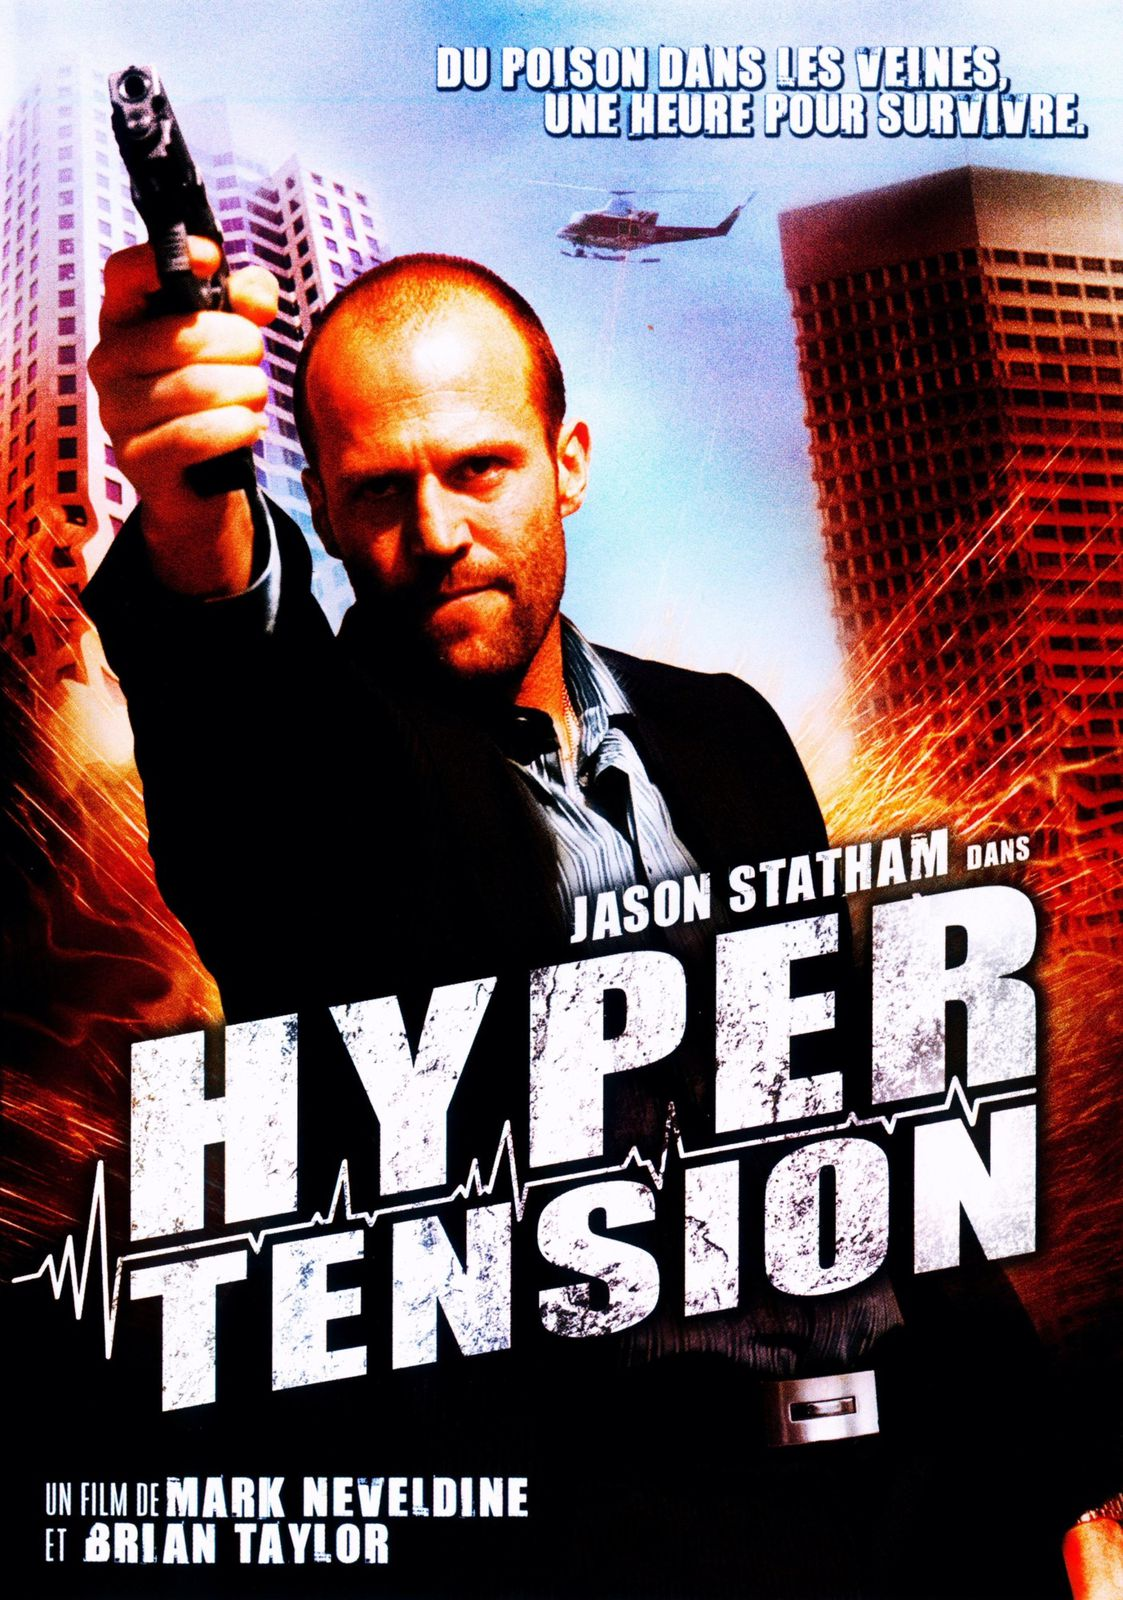 Filme Skinhead regarding hypertension - ciné discount